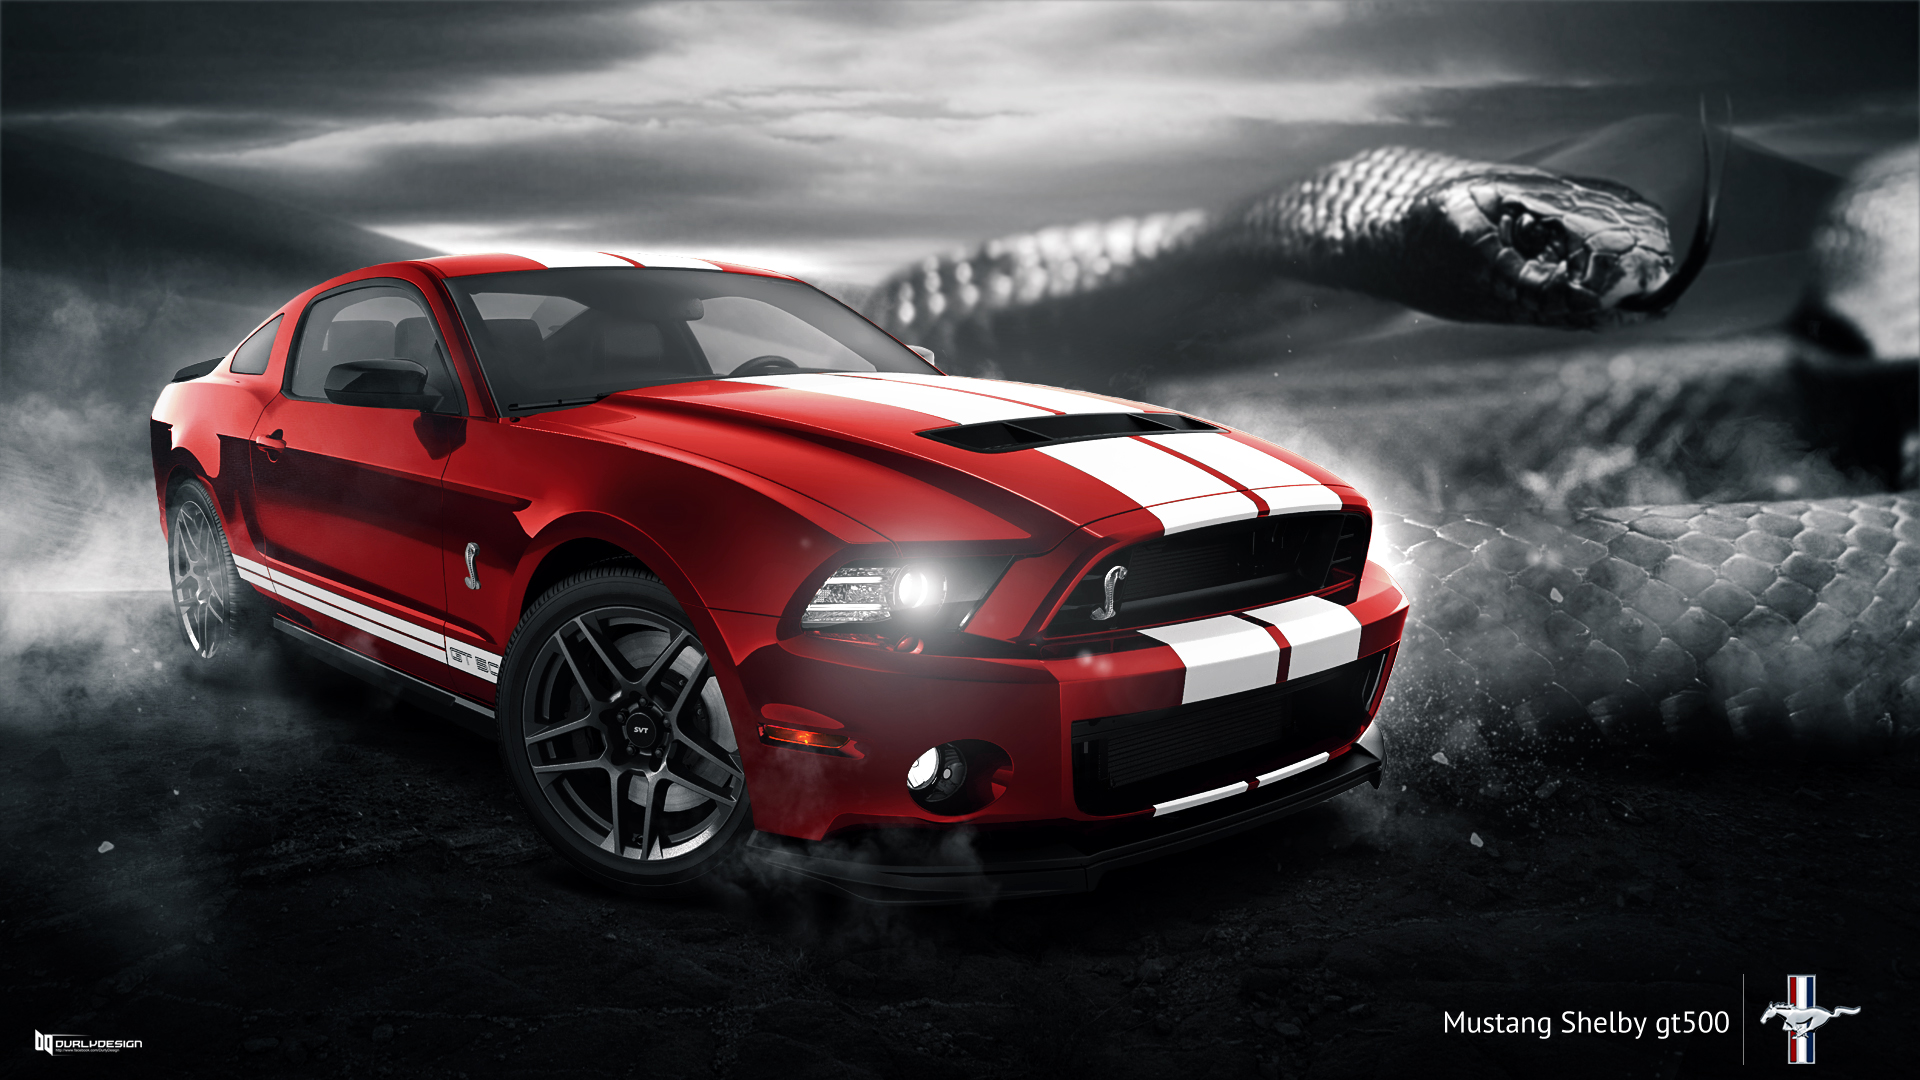 ford mustang shelby gt500 wallpaper by durly0505 on. Black Bedroom Furniture Sets. Home Design Ideas